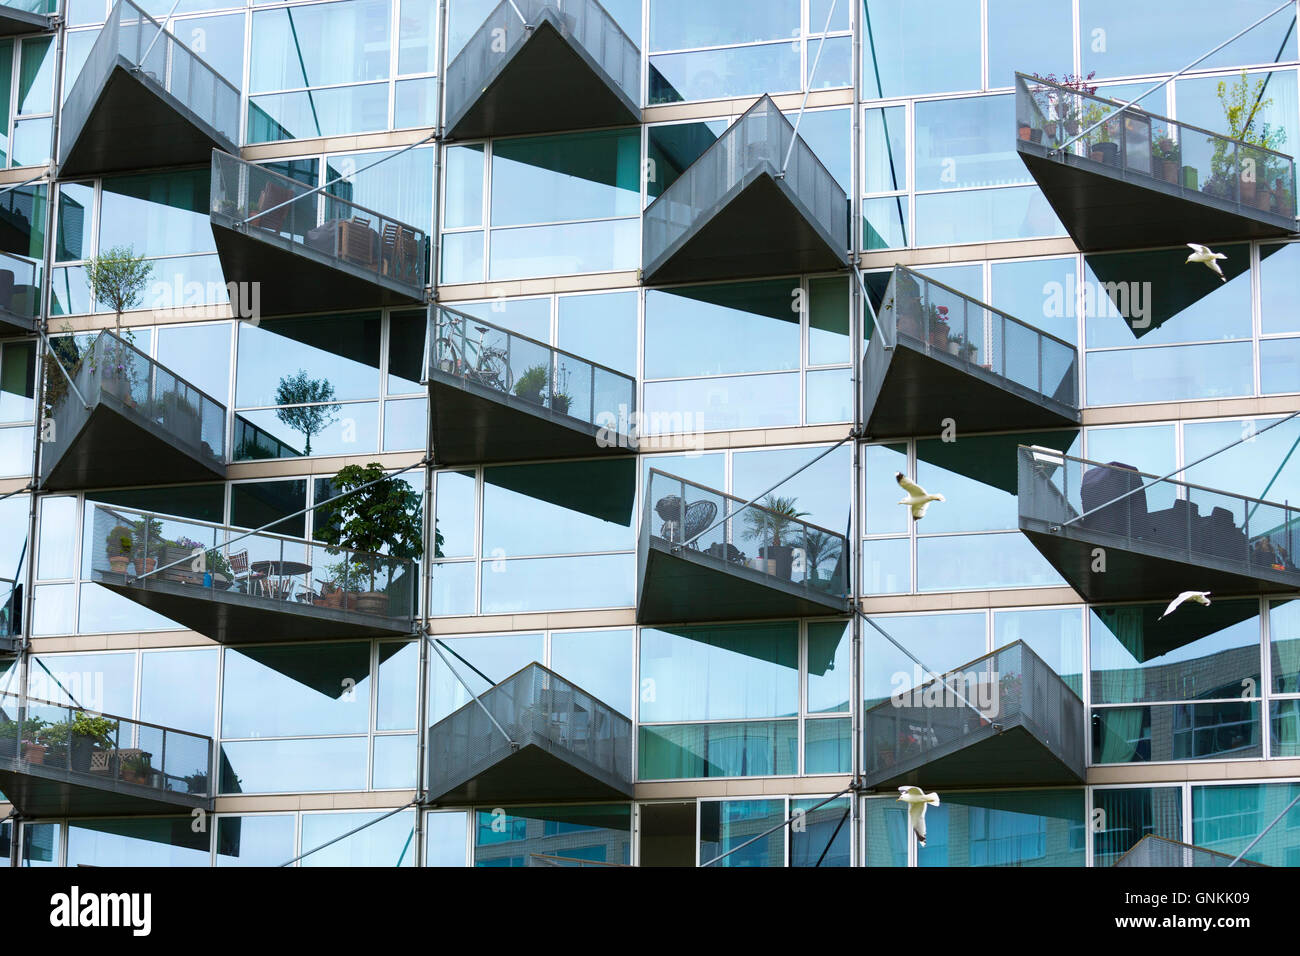 Glass Balcony Modern Architecture New High Rise Homes Development Orestads  Boulevard In Orestad City Area, Copenhagen, Denmark